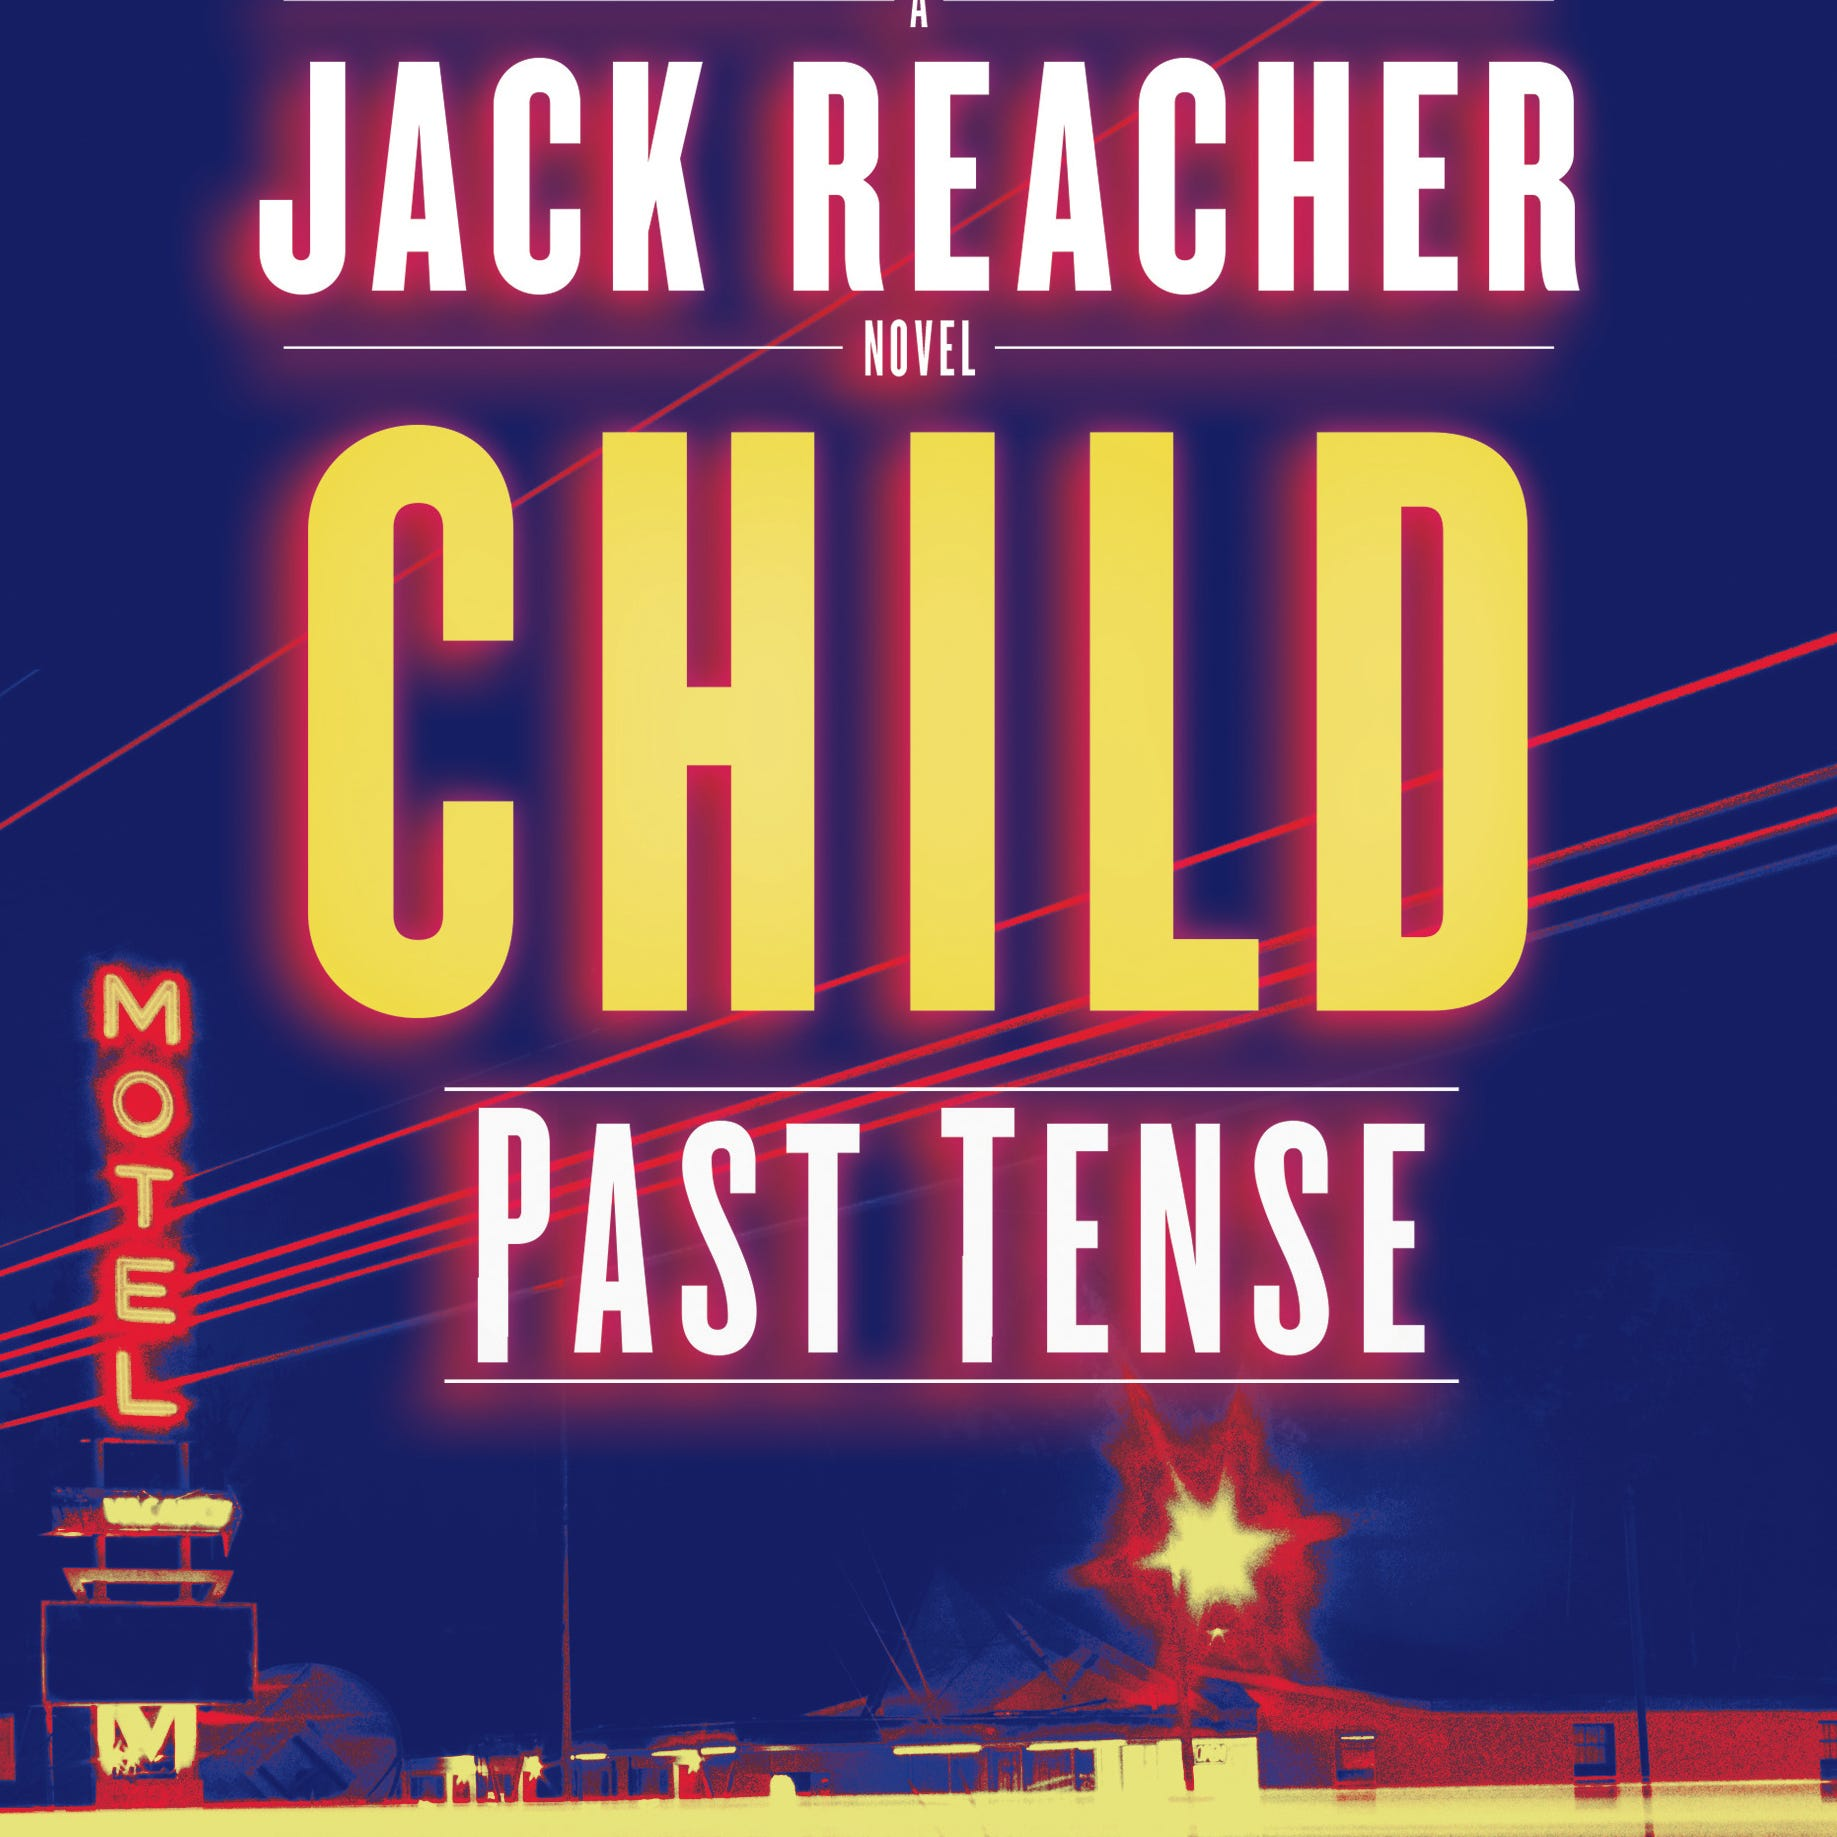 Jack Reacher is back in stellar form from Lee Child; David Baldacci launches new series